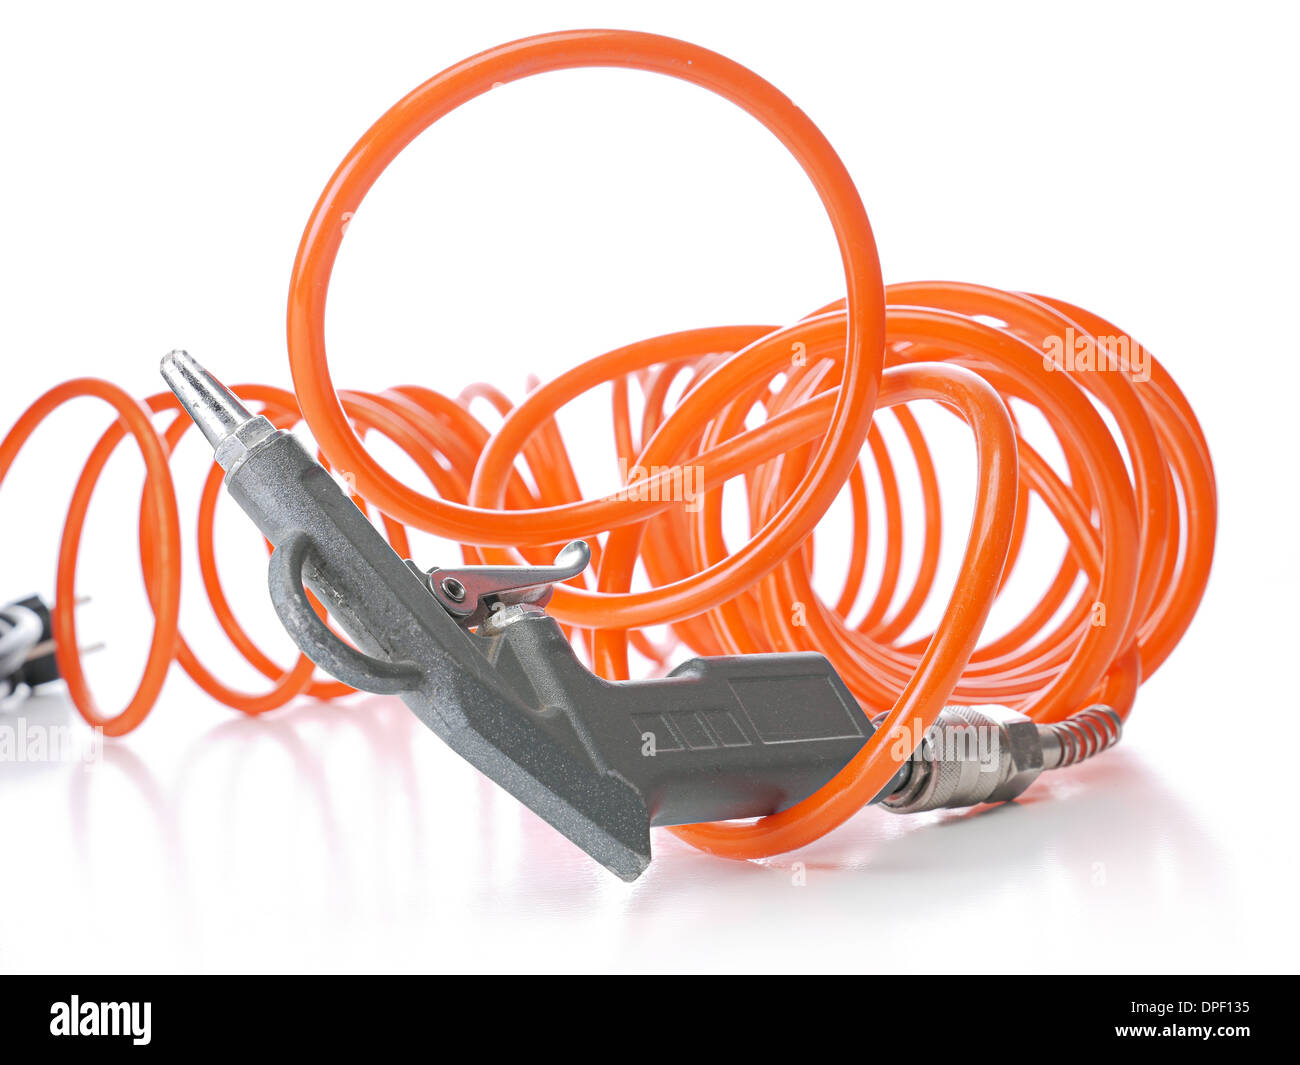 Air compressor gun with coiled orange hose shot on white - Stock Image